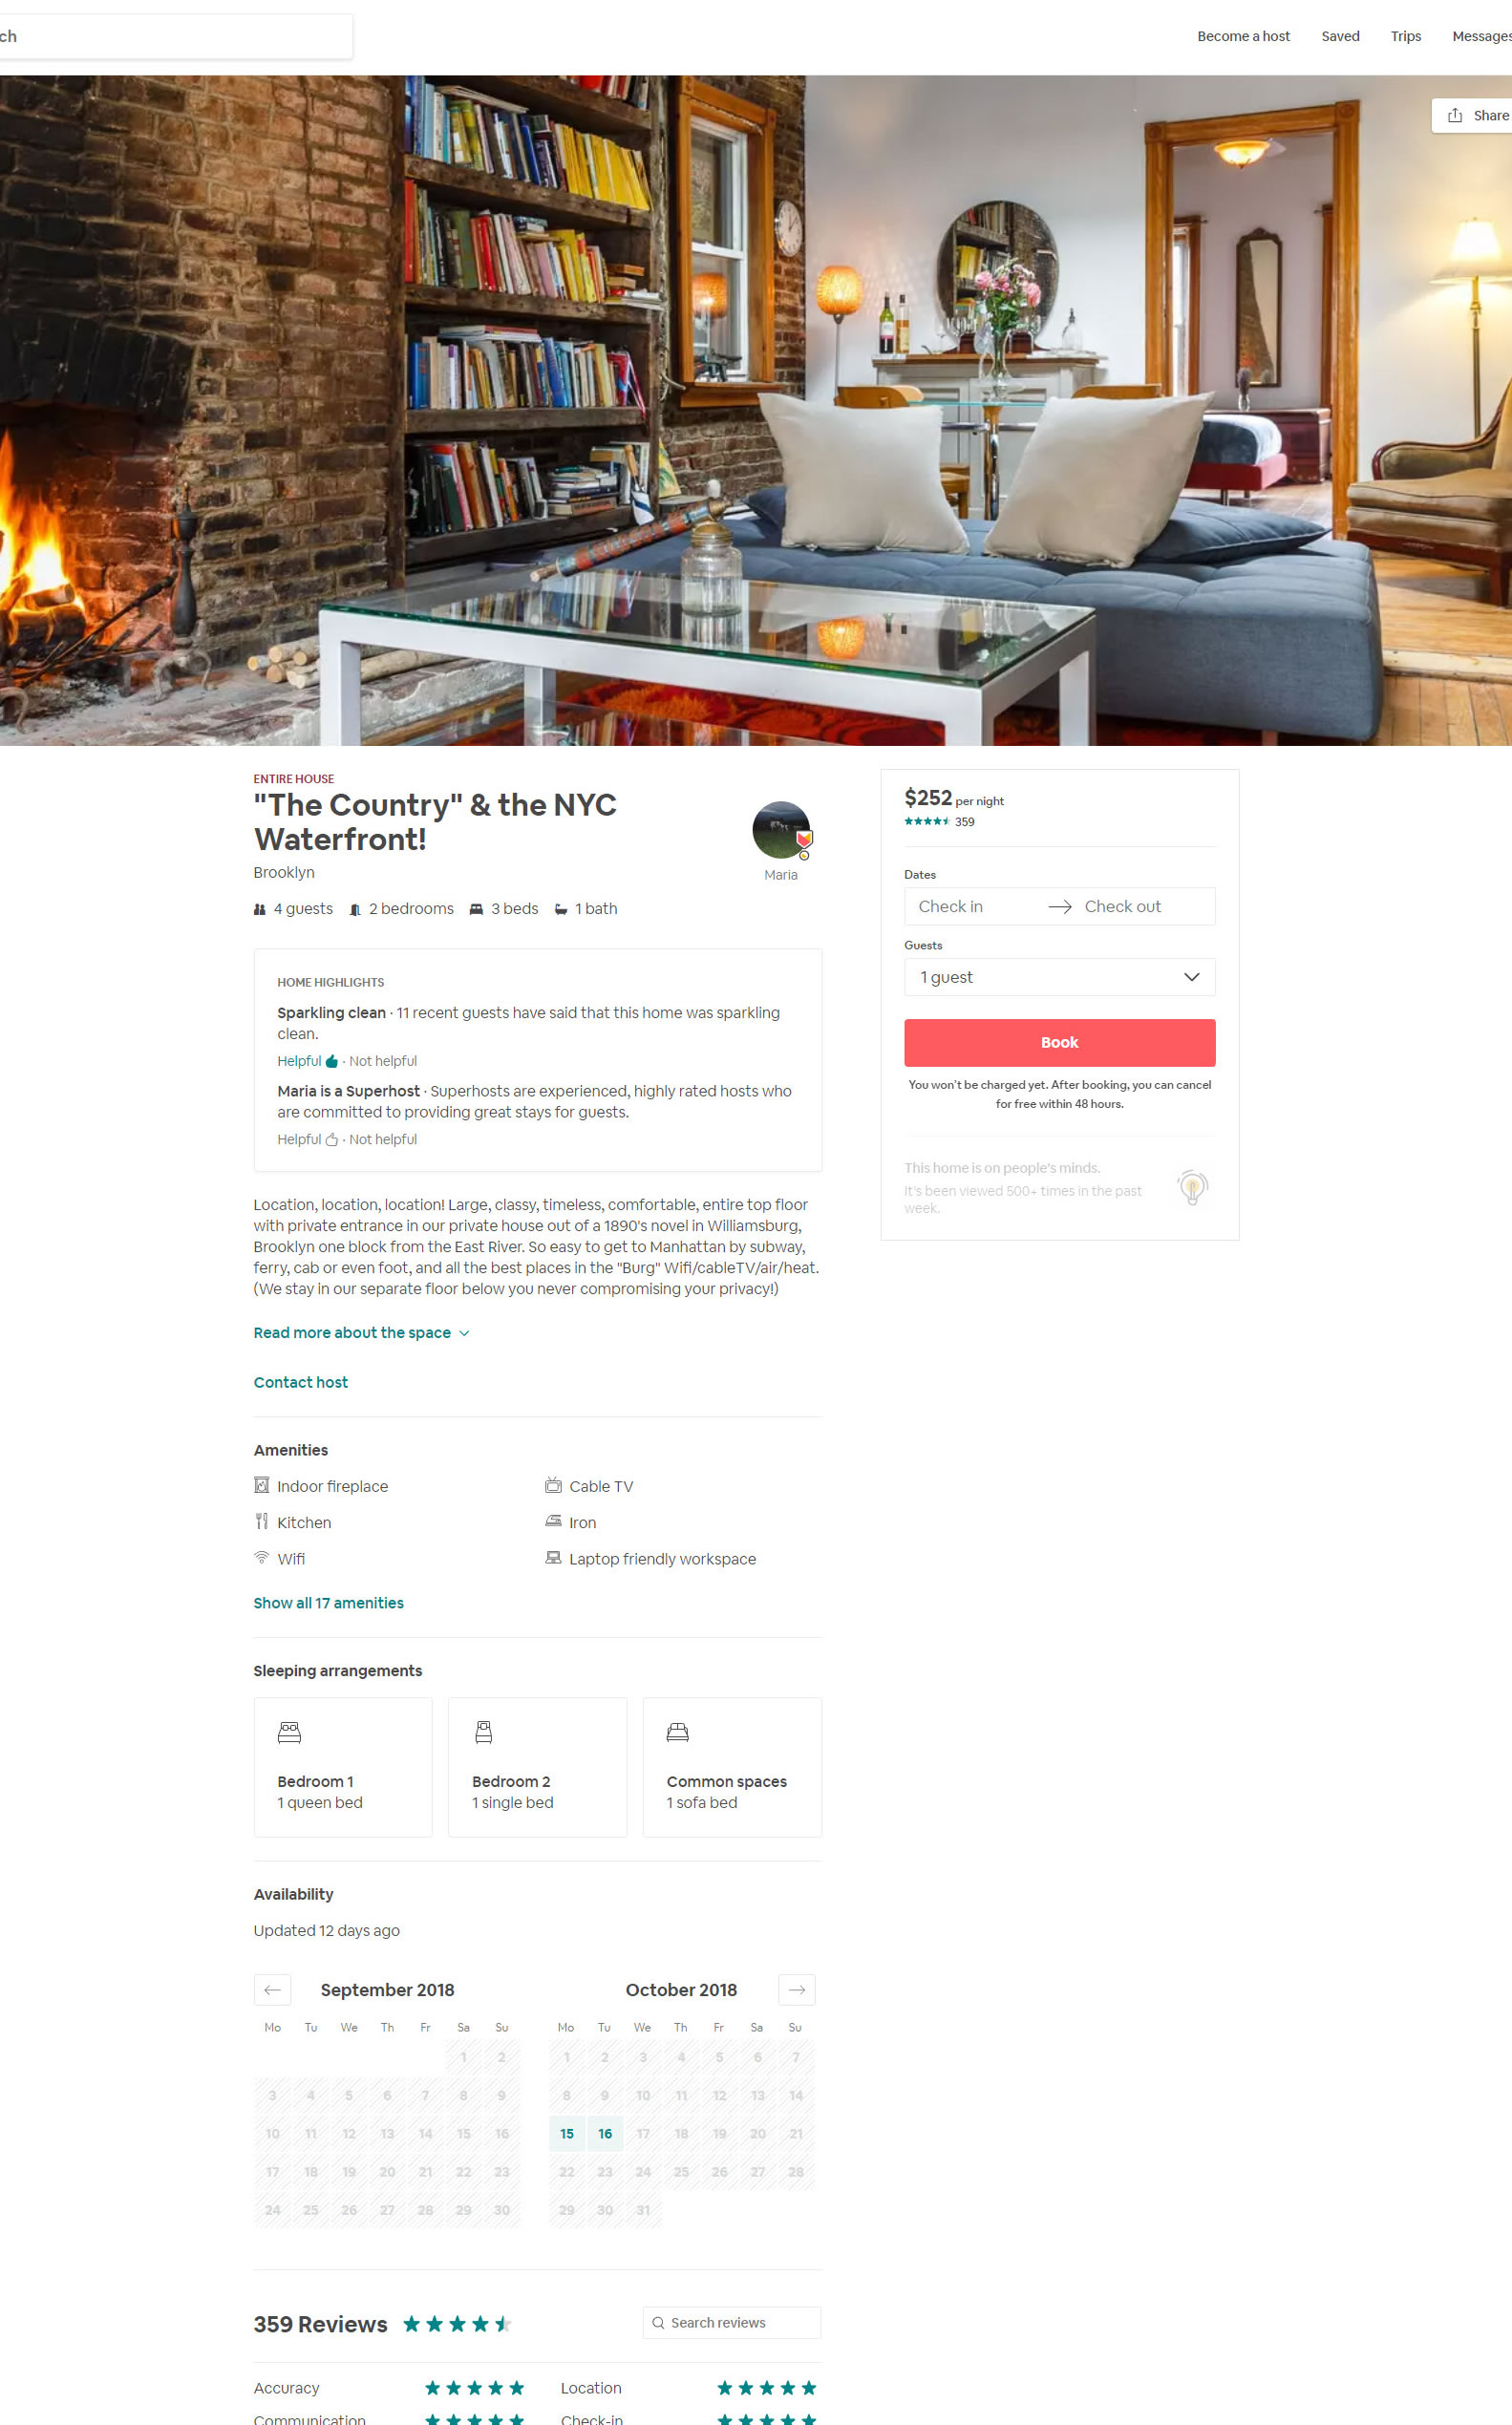 Airbnb Made 3 Changes To Their Property Page | GoodUI